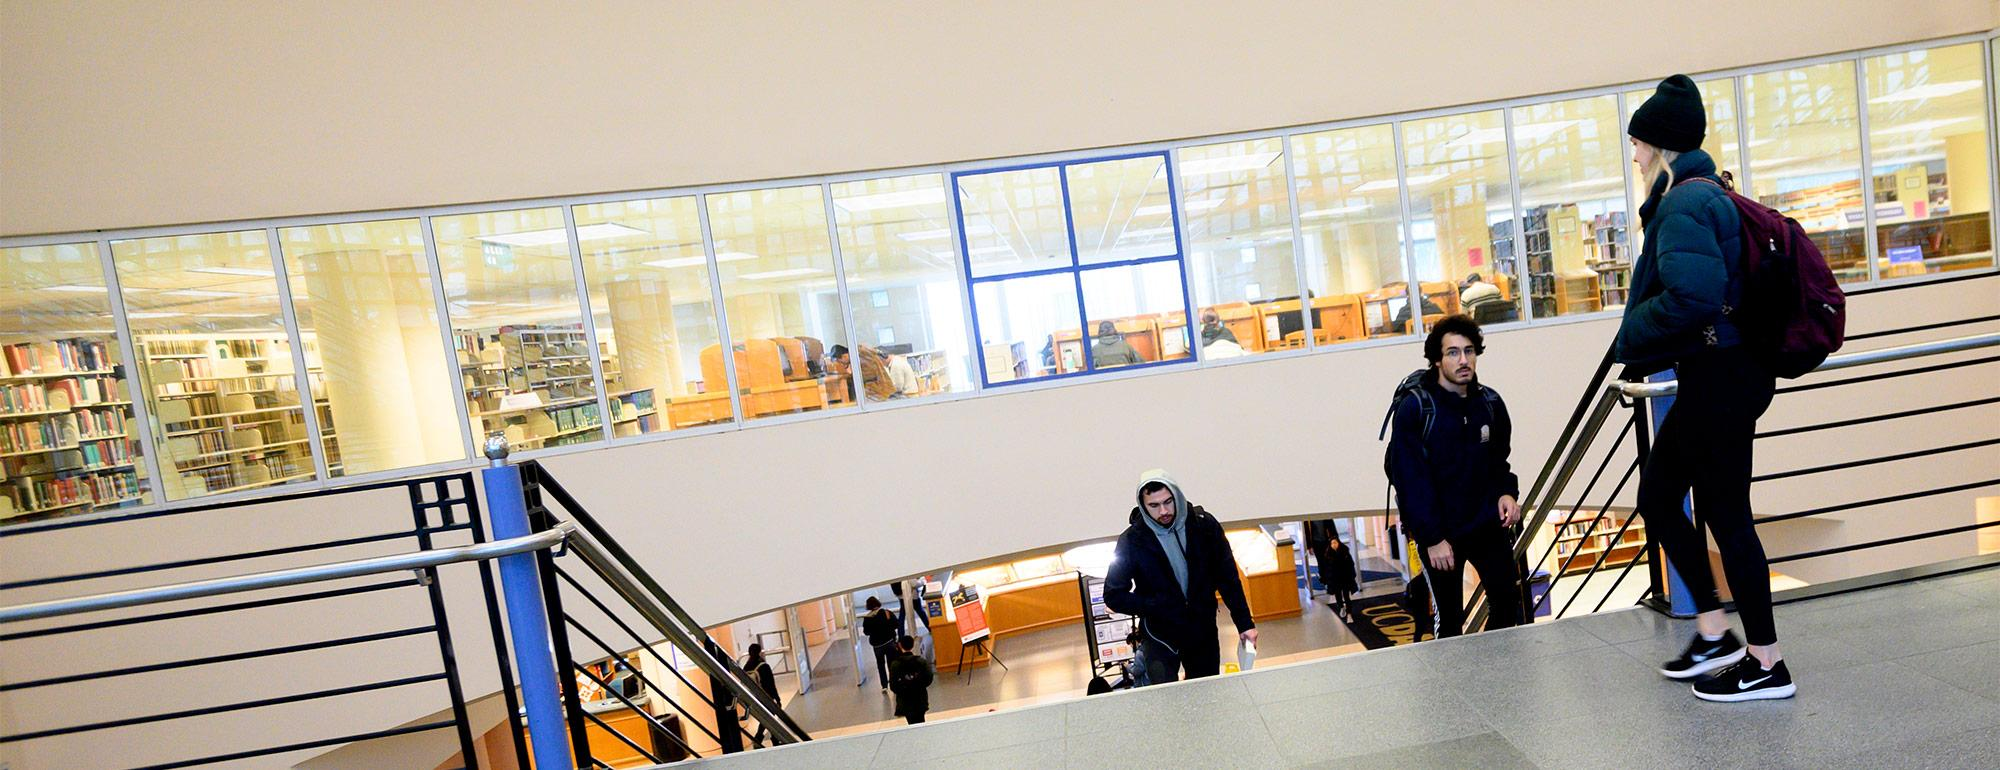 Two students walking up the stairs as another is heading down at the Shields LIbrary.